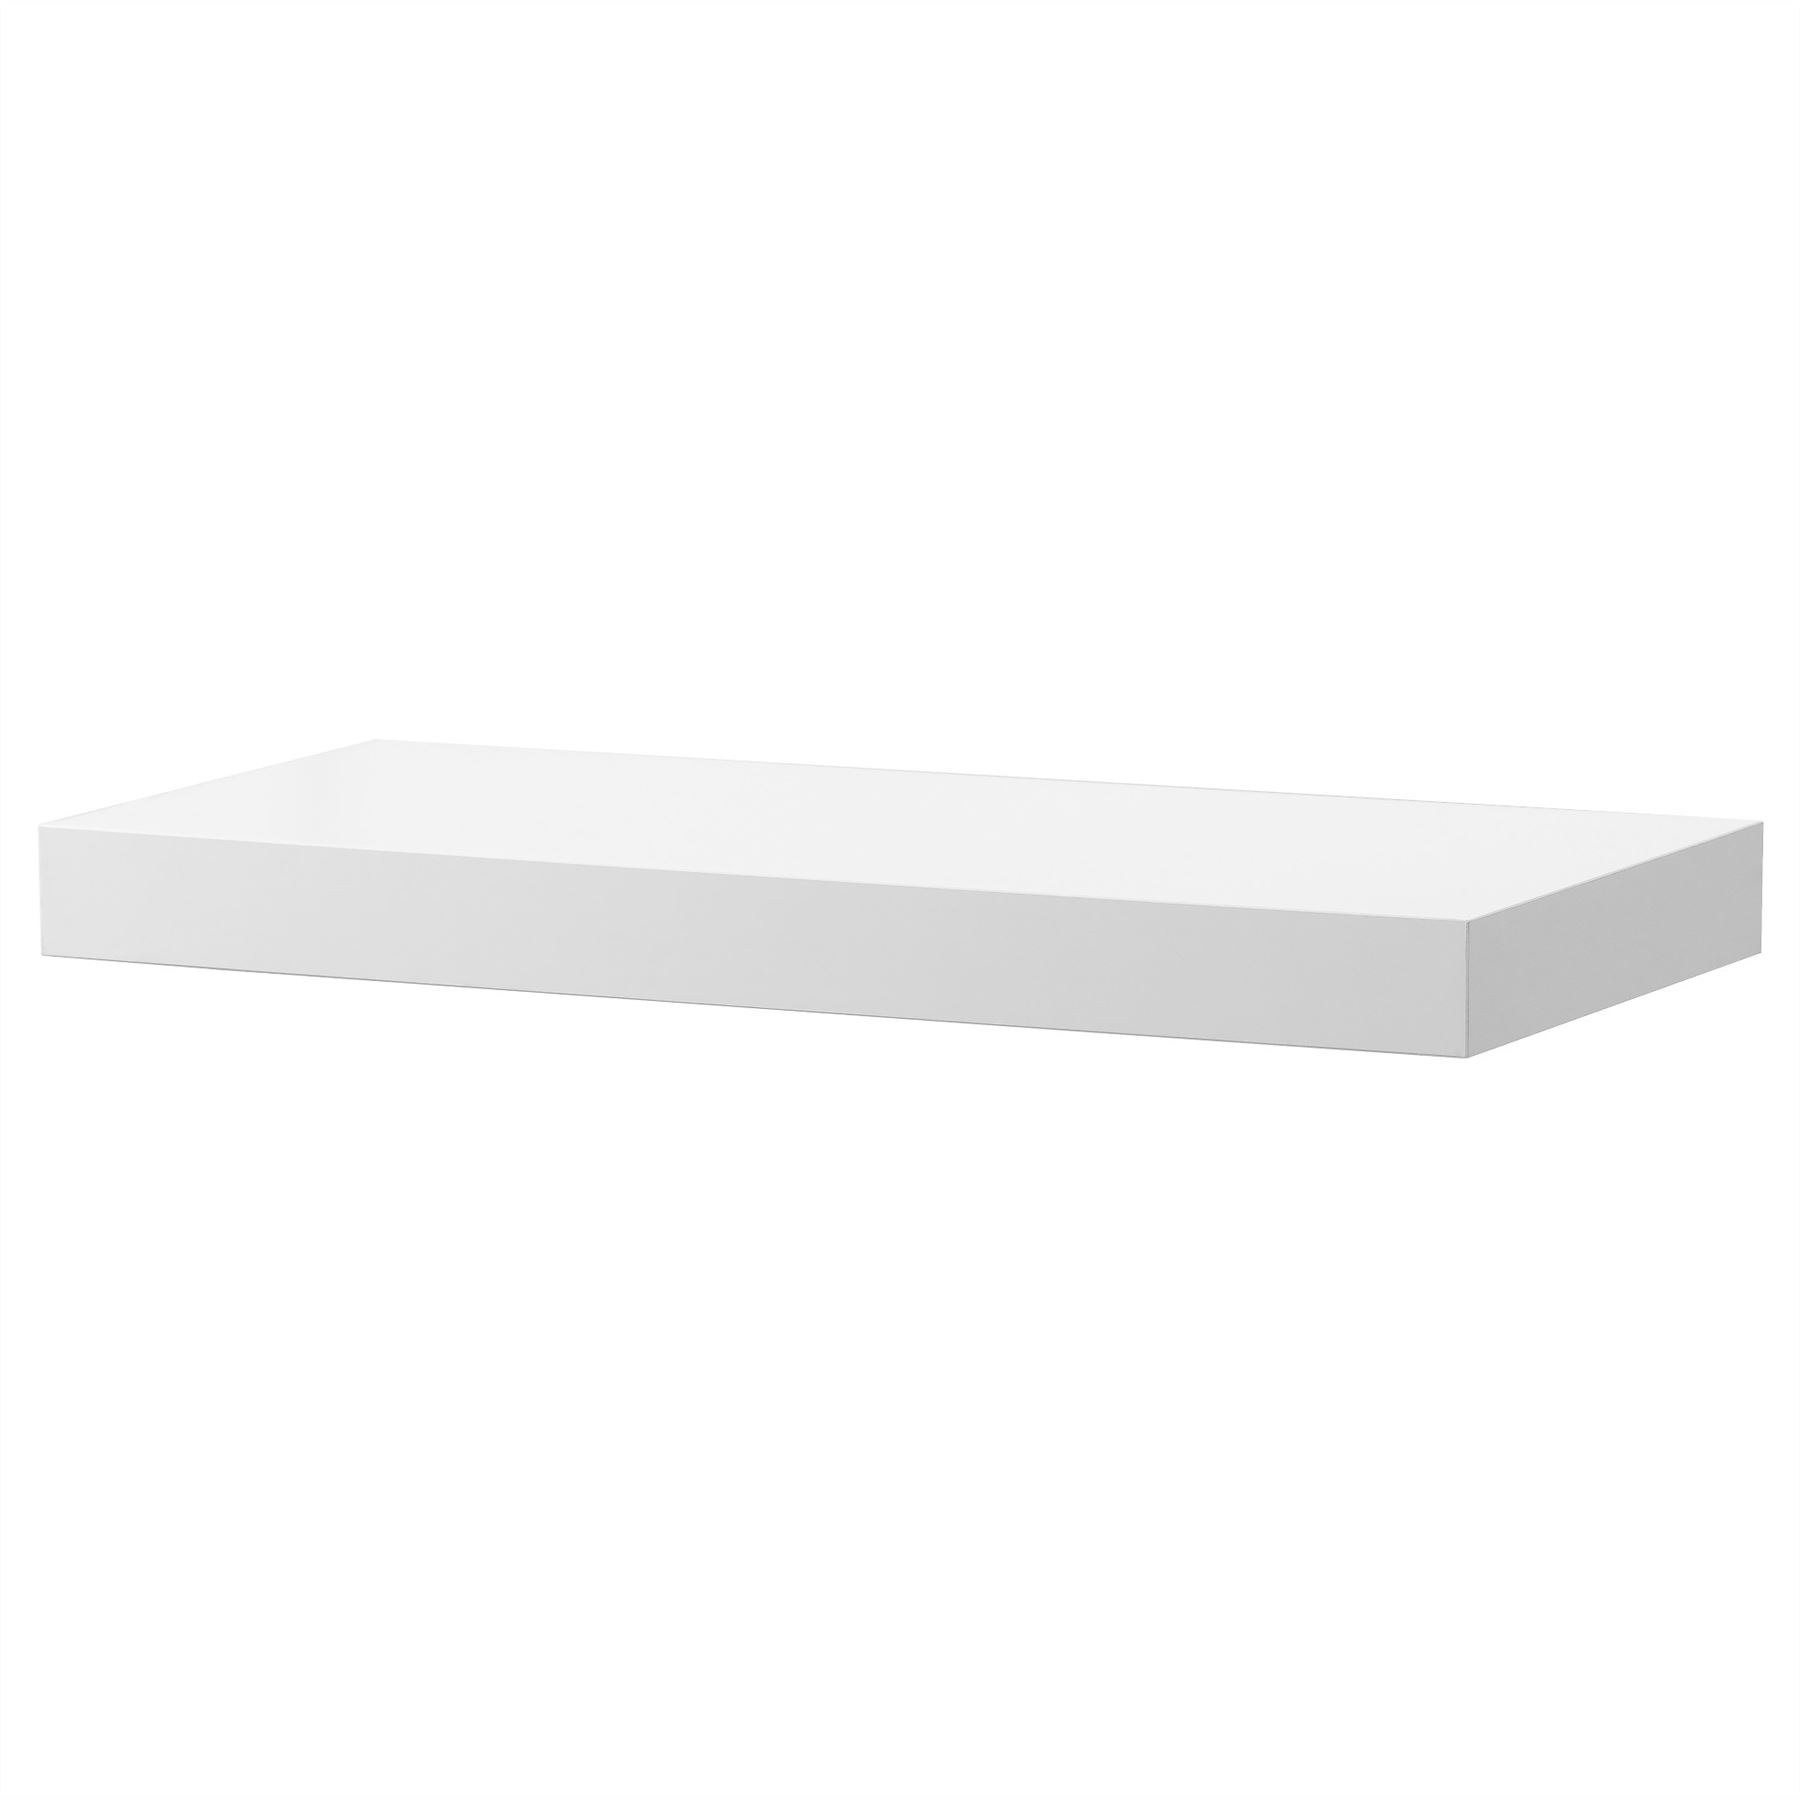 ikea lack floating wall shelf display concealed mounting various sizes colours ebay. Black Bedroom Furniture Sets. Home Design Ideas